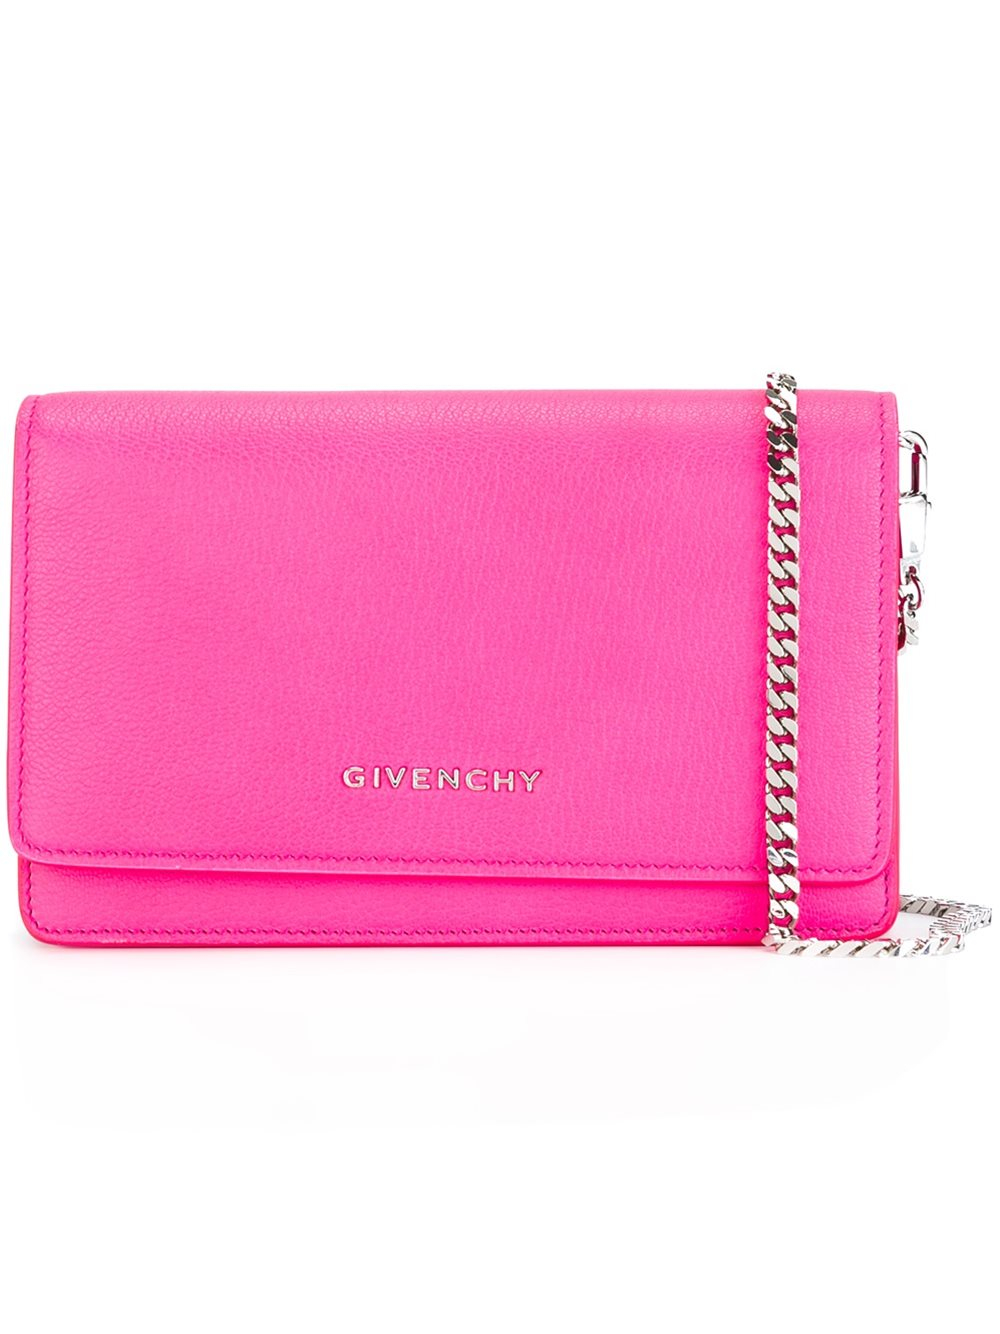 23c7cac8879a Lyst - Givenchy Small  pandora  Chain Wallet in Pink